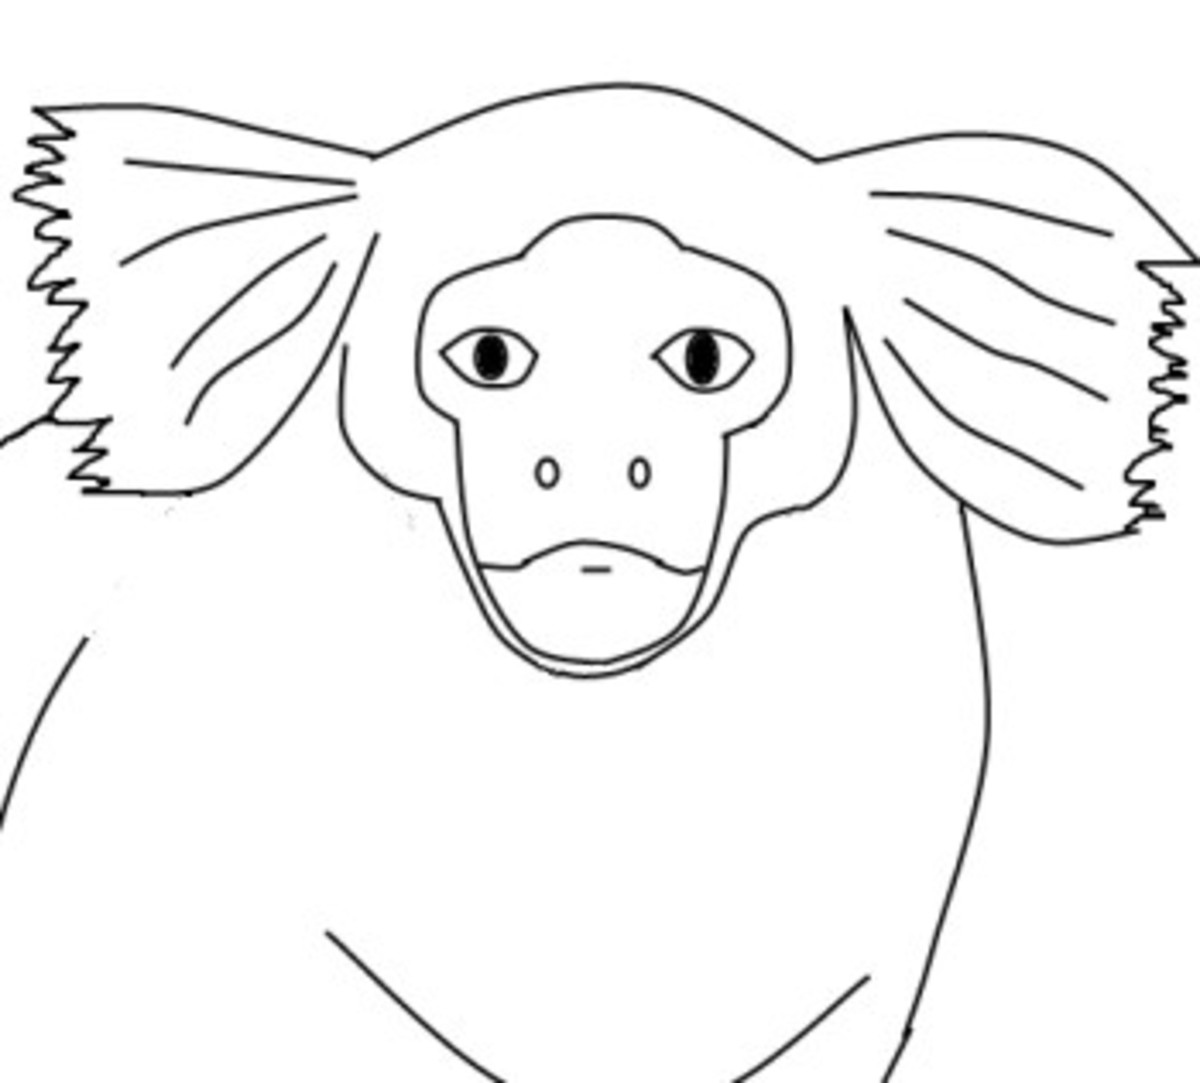 pygmy marmoset coloring pages - photo#27